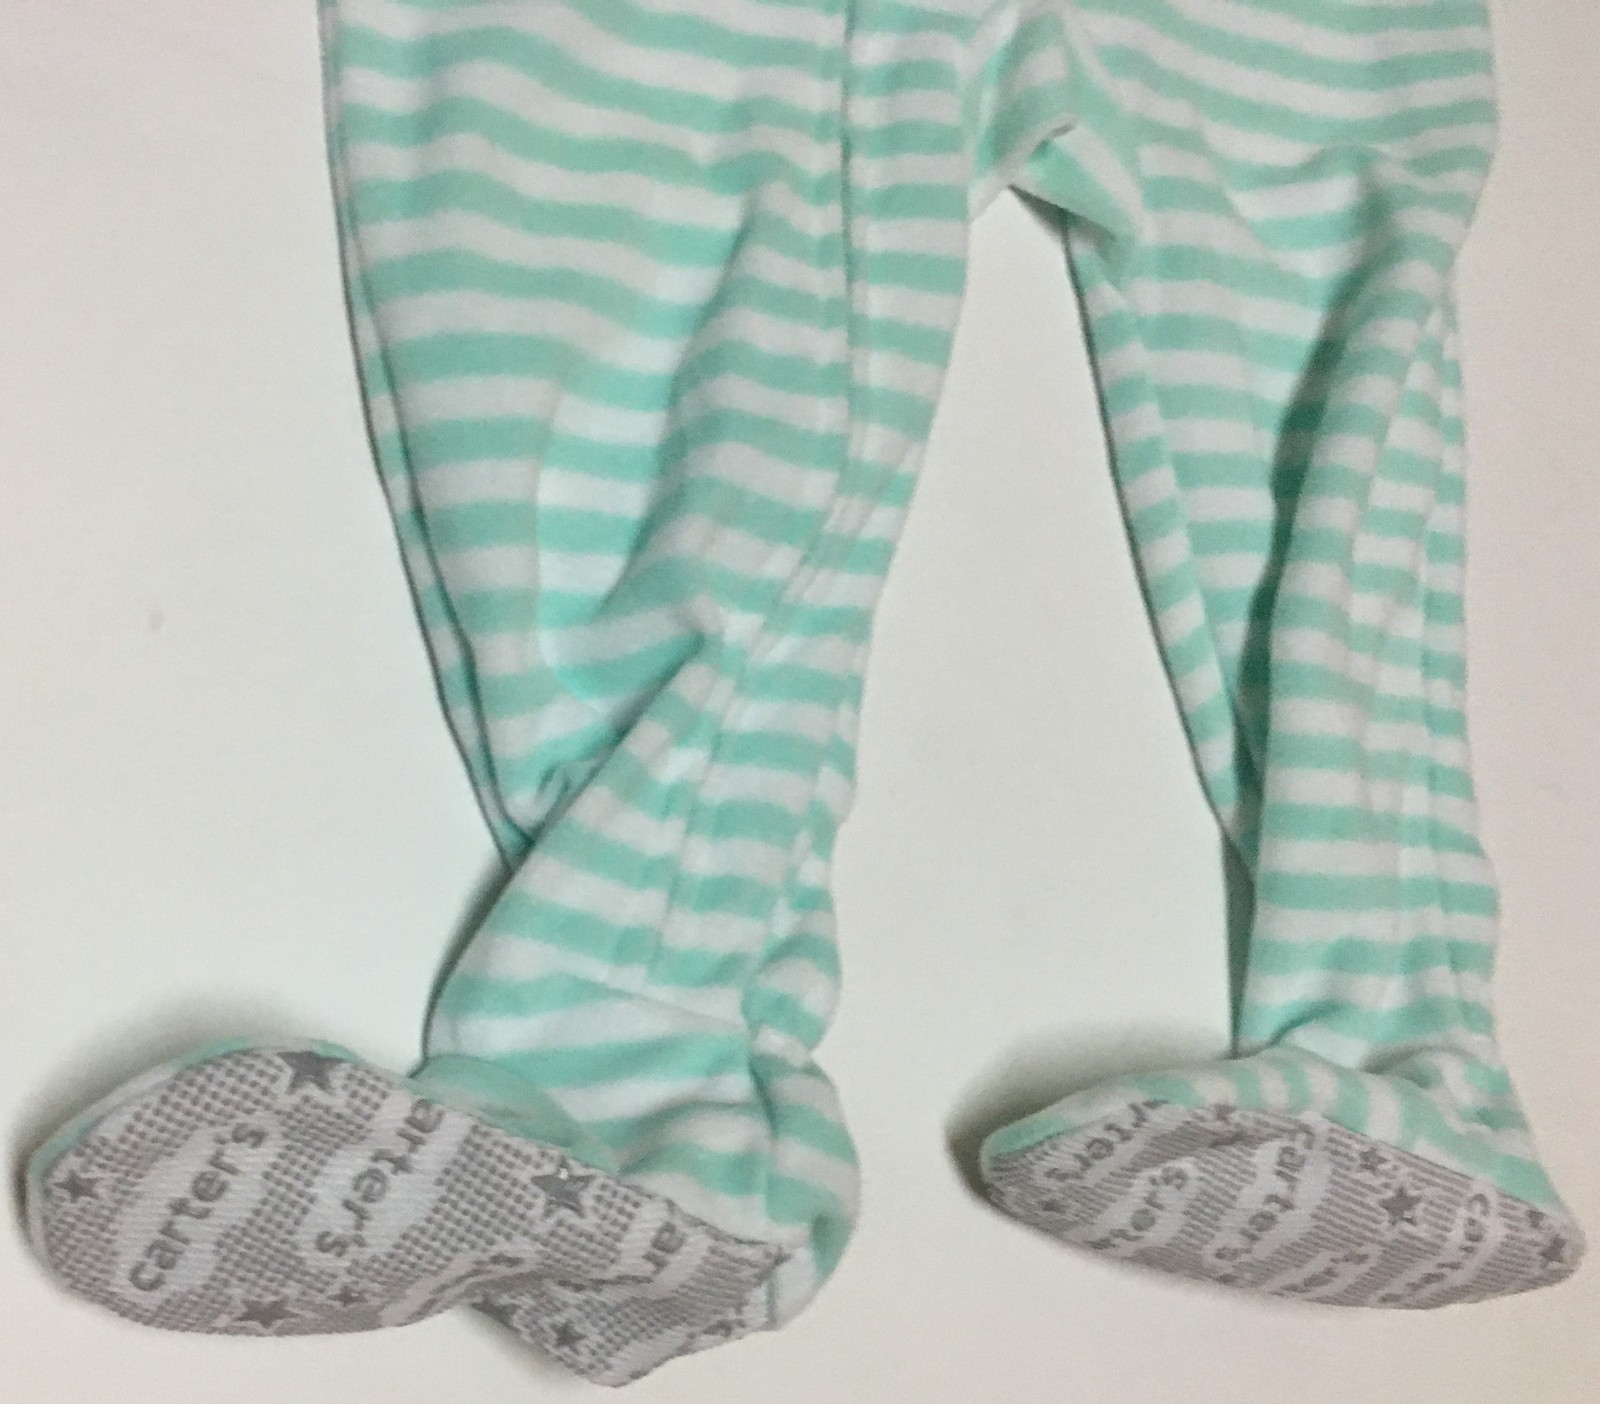 Carters One Piece Sleeper 18 MOS Non Slip Footies Puppy Striped NWT